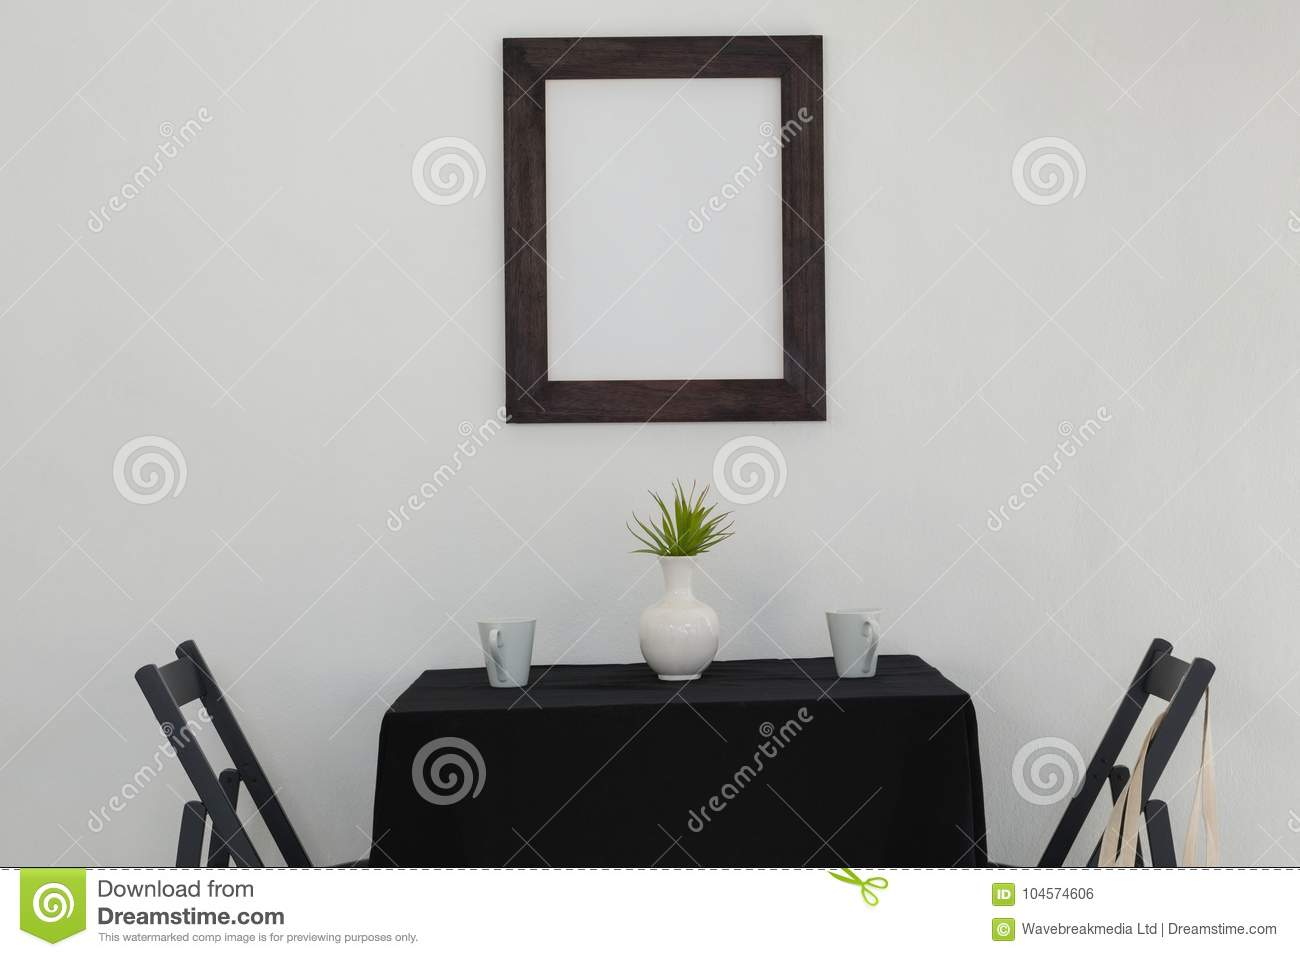 Table Setting And Picture Frame Stock Photo - Image of arranged ...